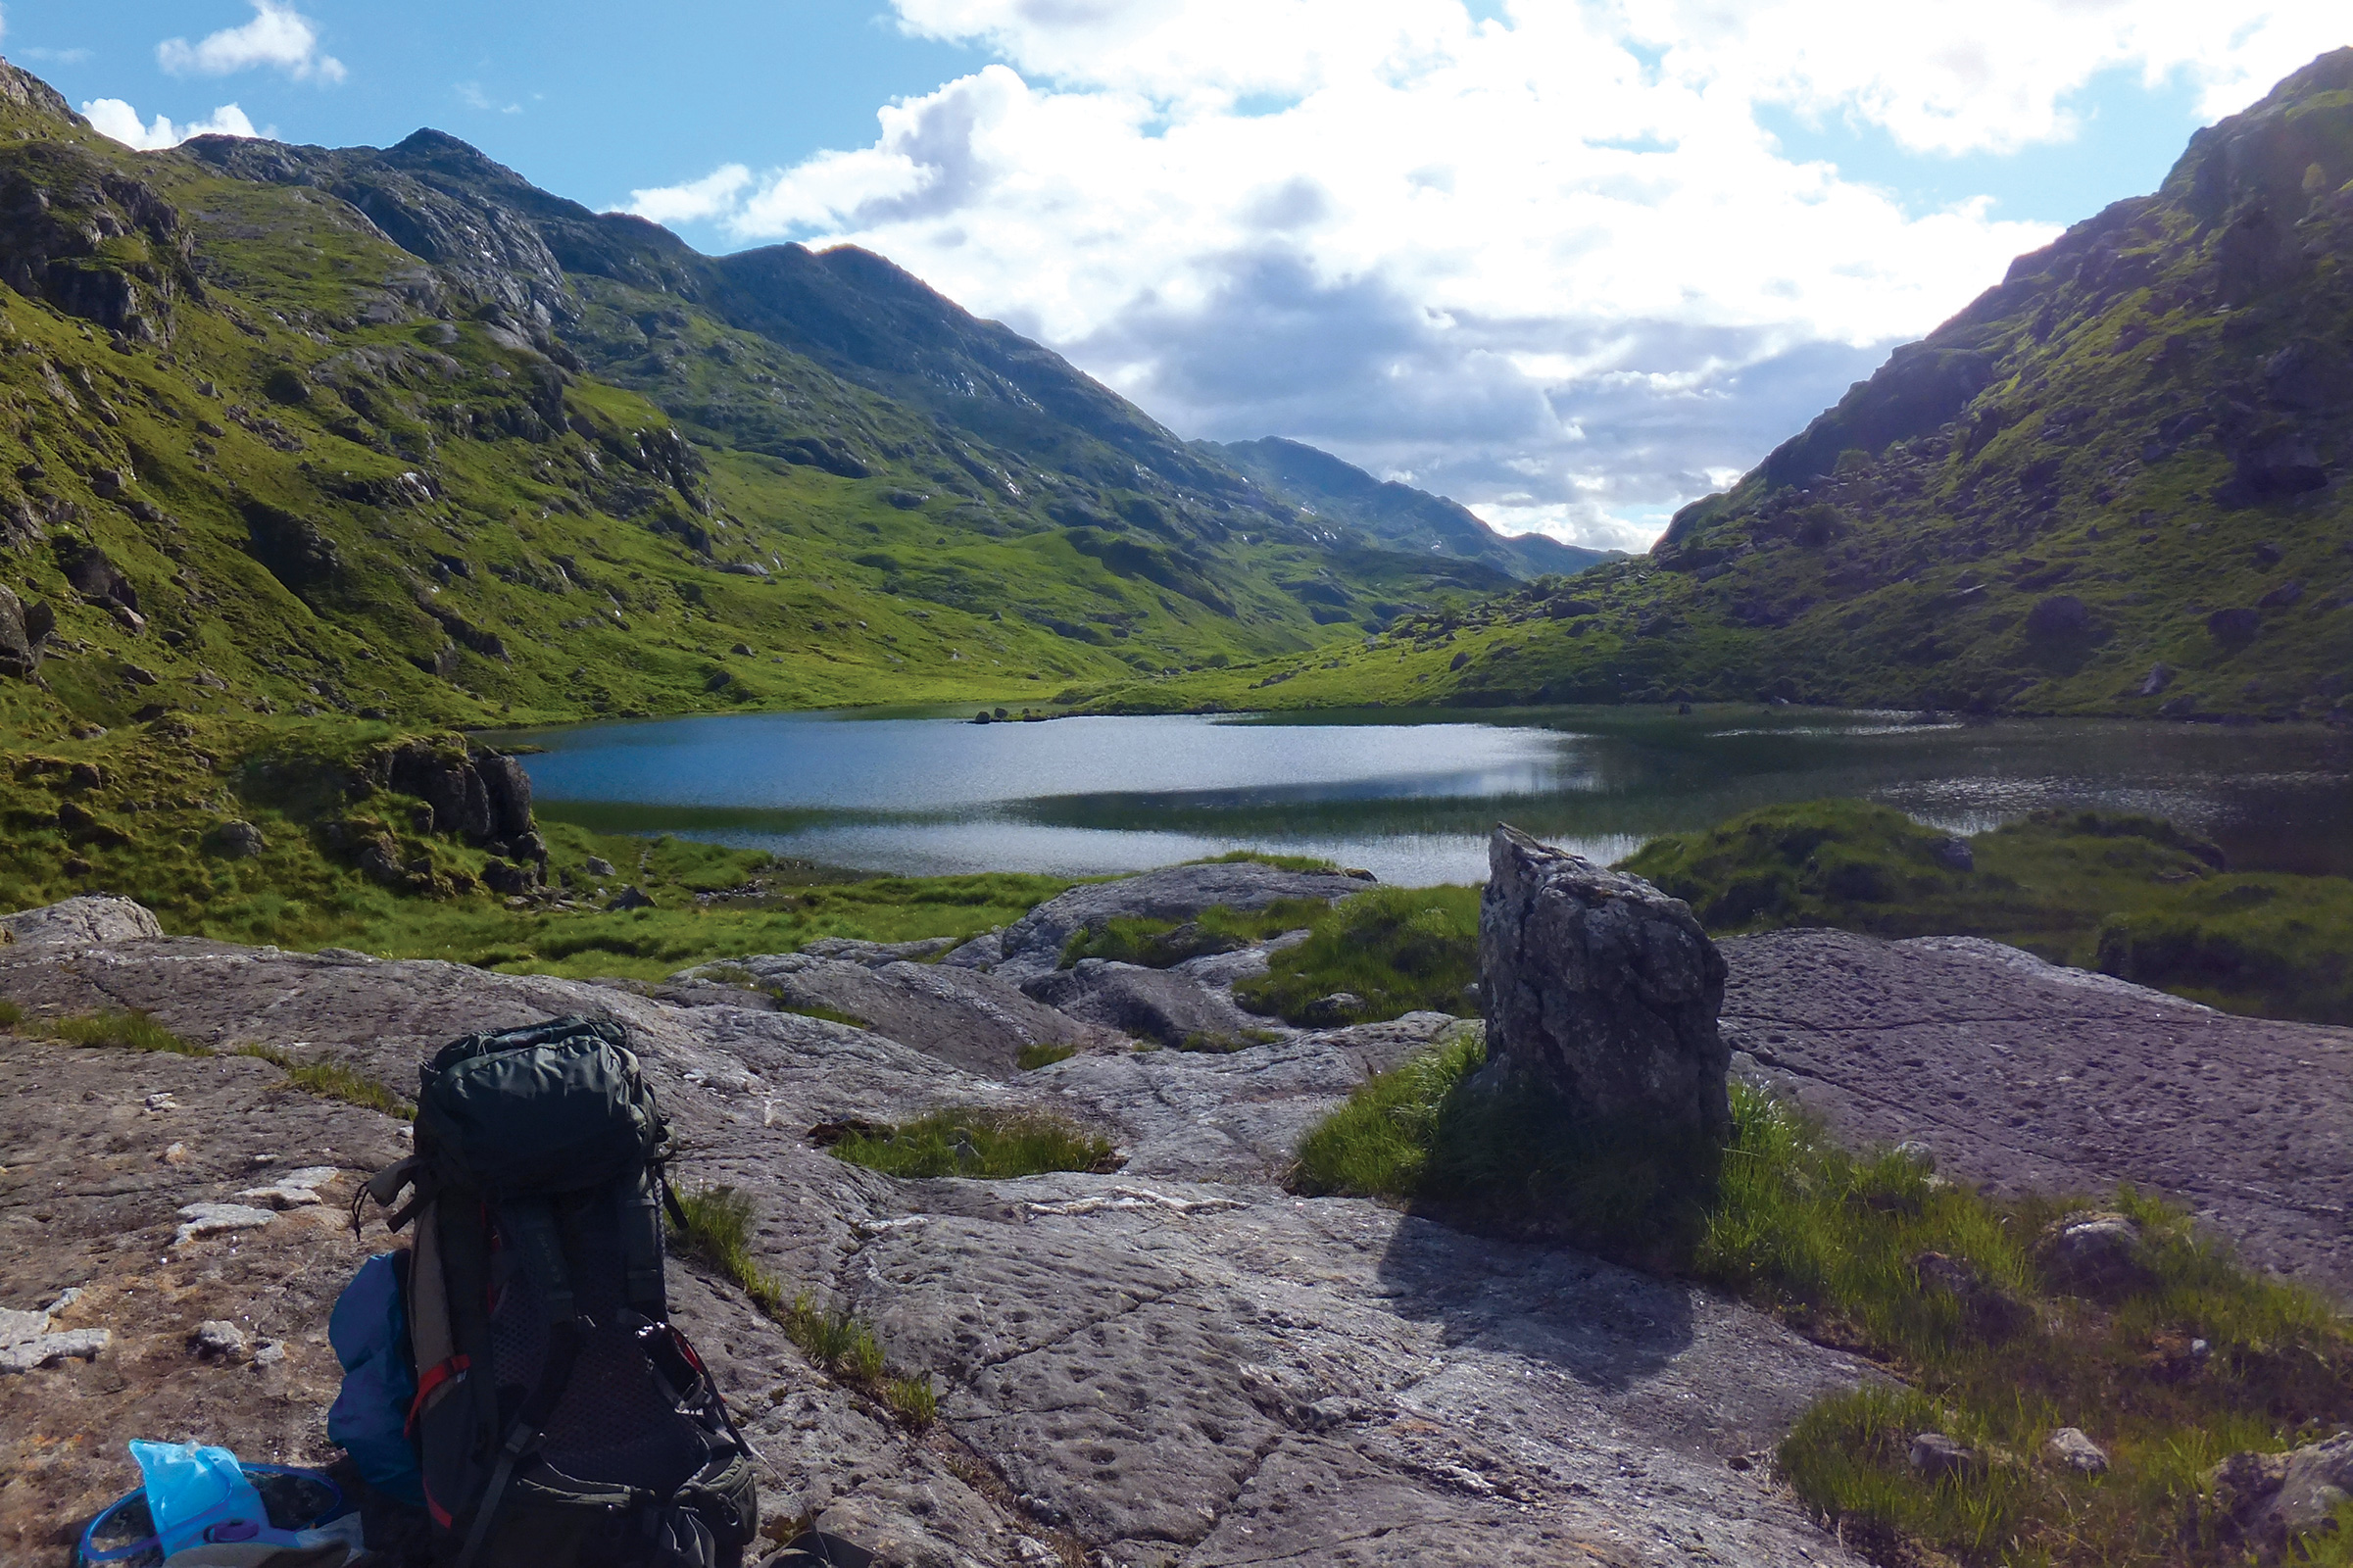 A pit stop at a lochan